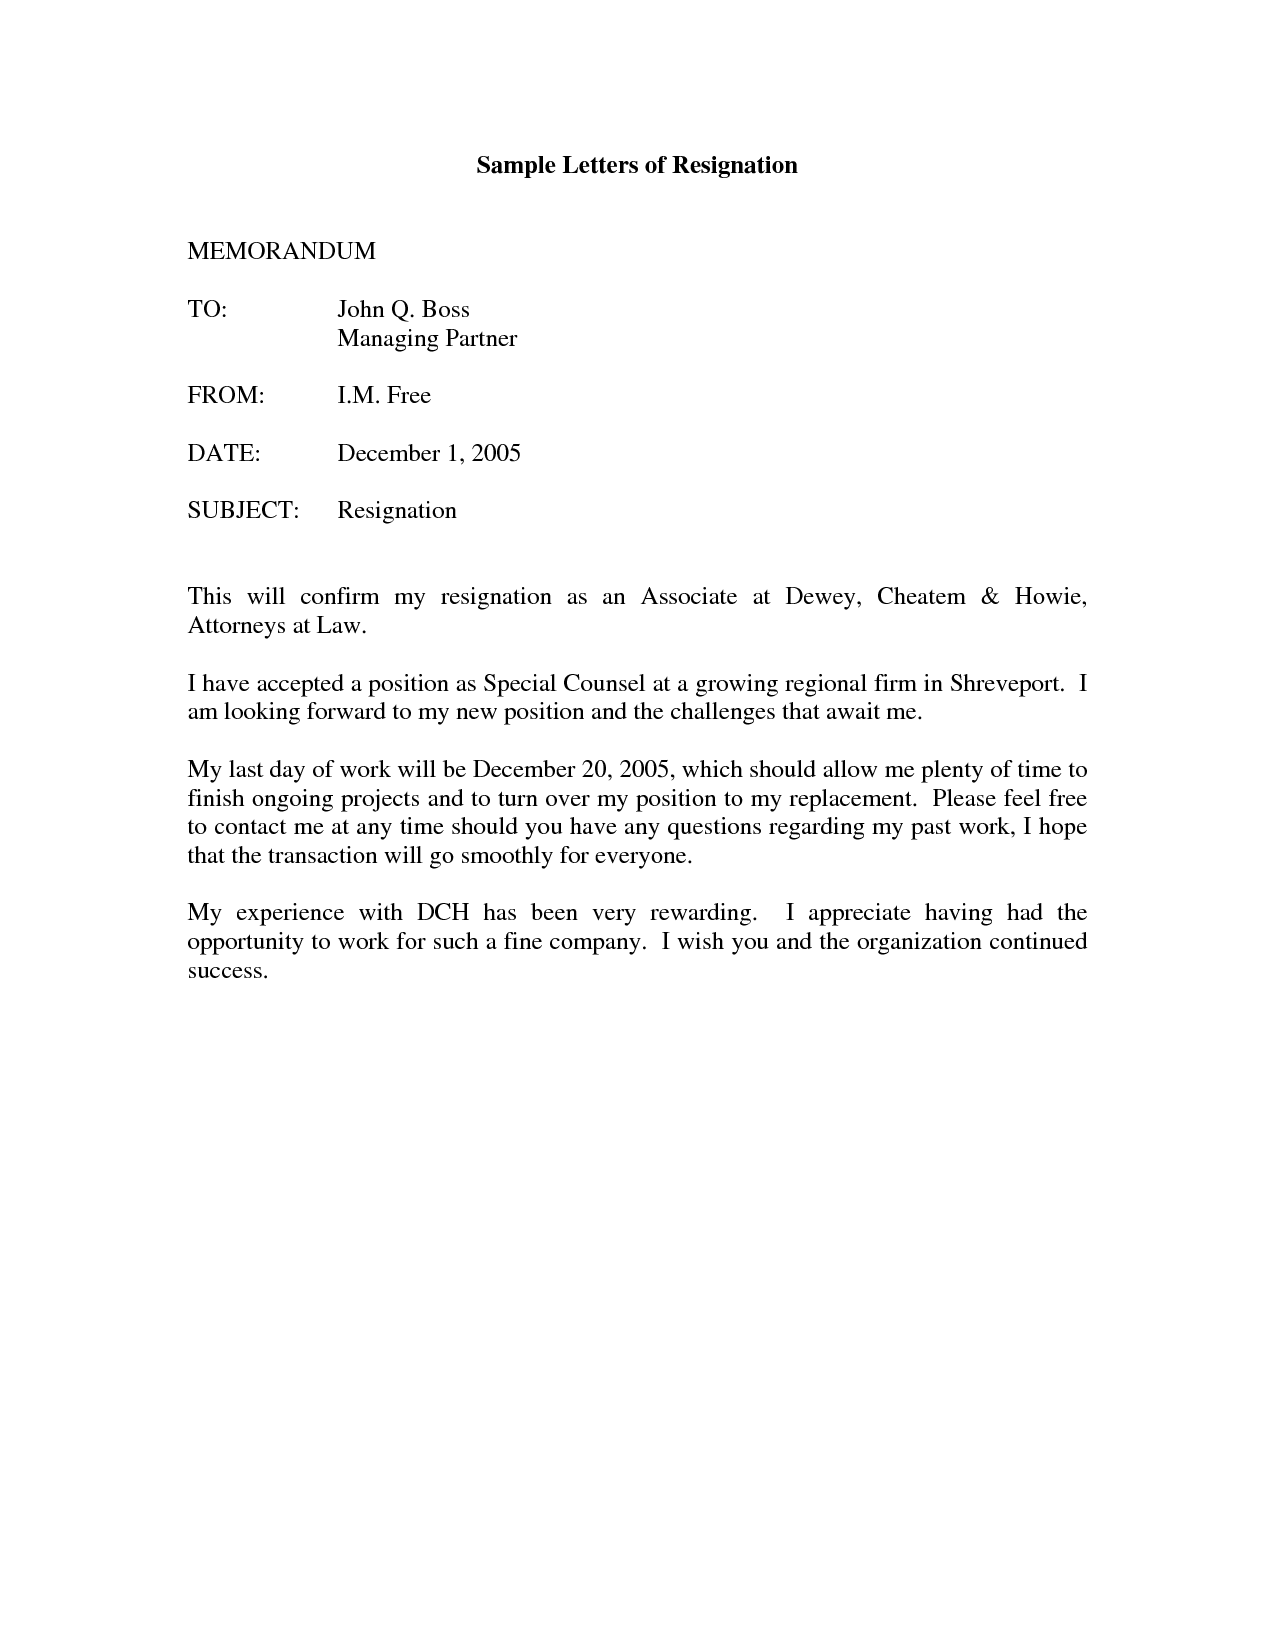 Printable Sample Letter of Resignation Form – Free Letter of Resignation Template Word